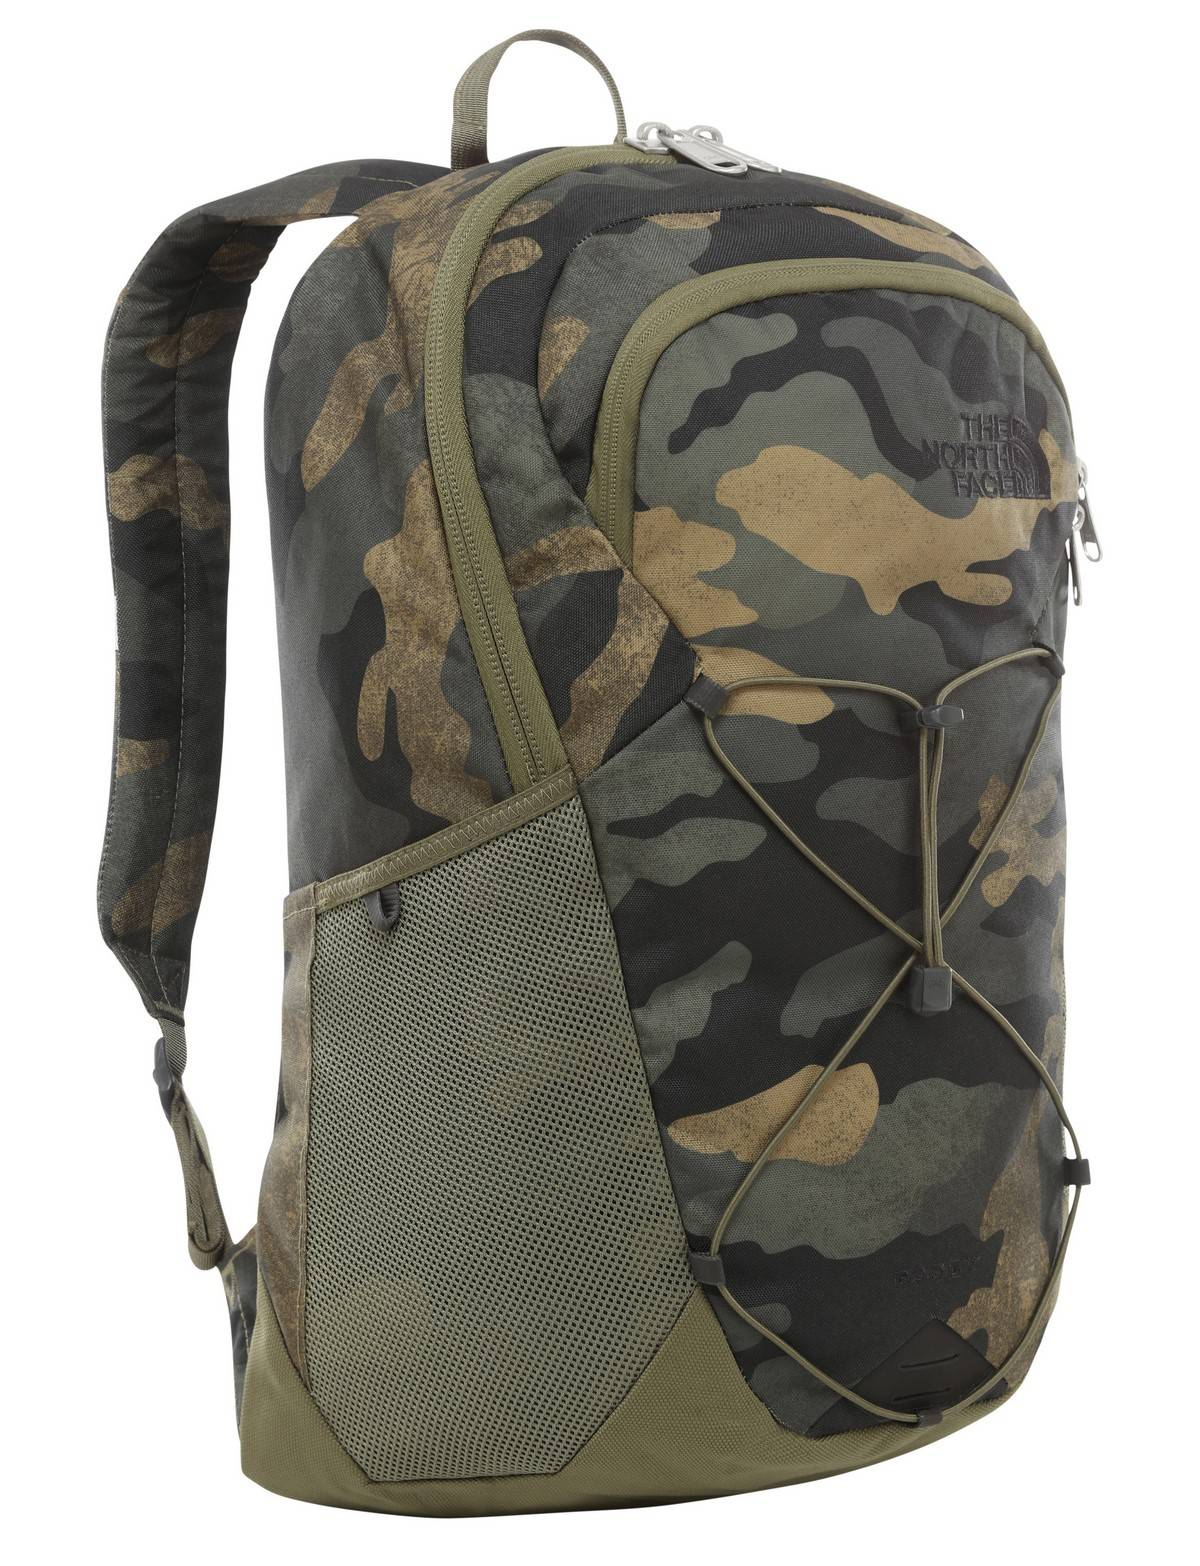 The North Face Zaino The North Face Rodey Camo G2G